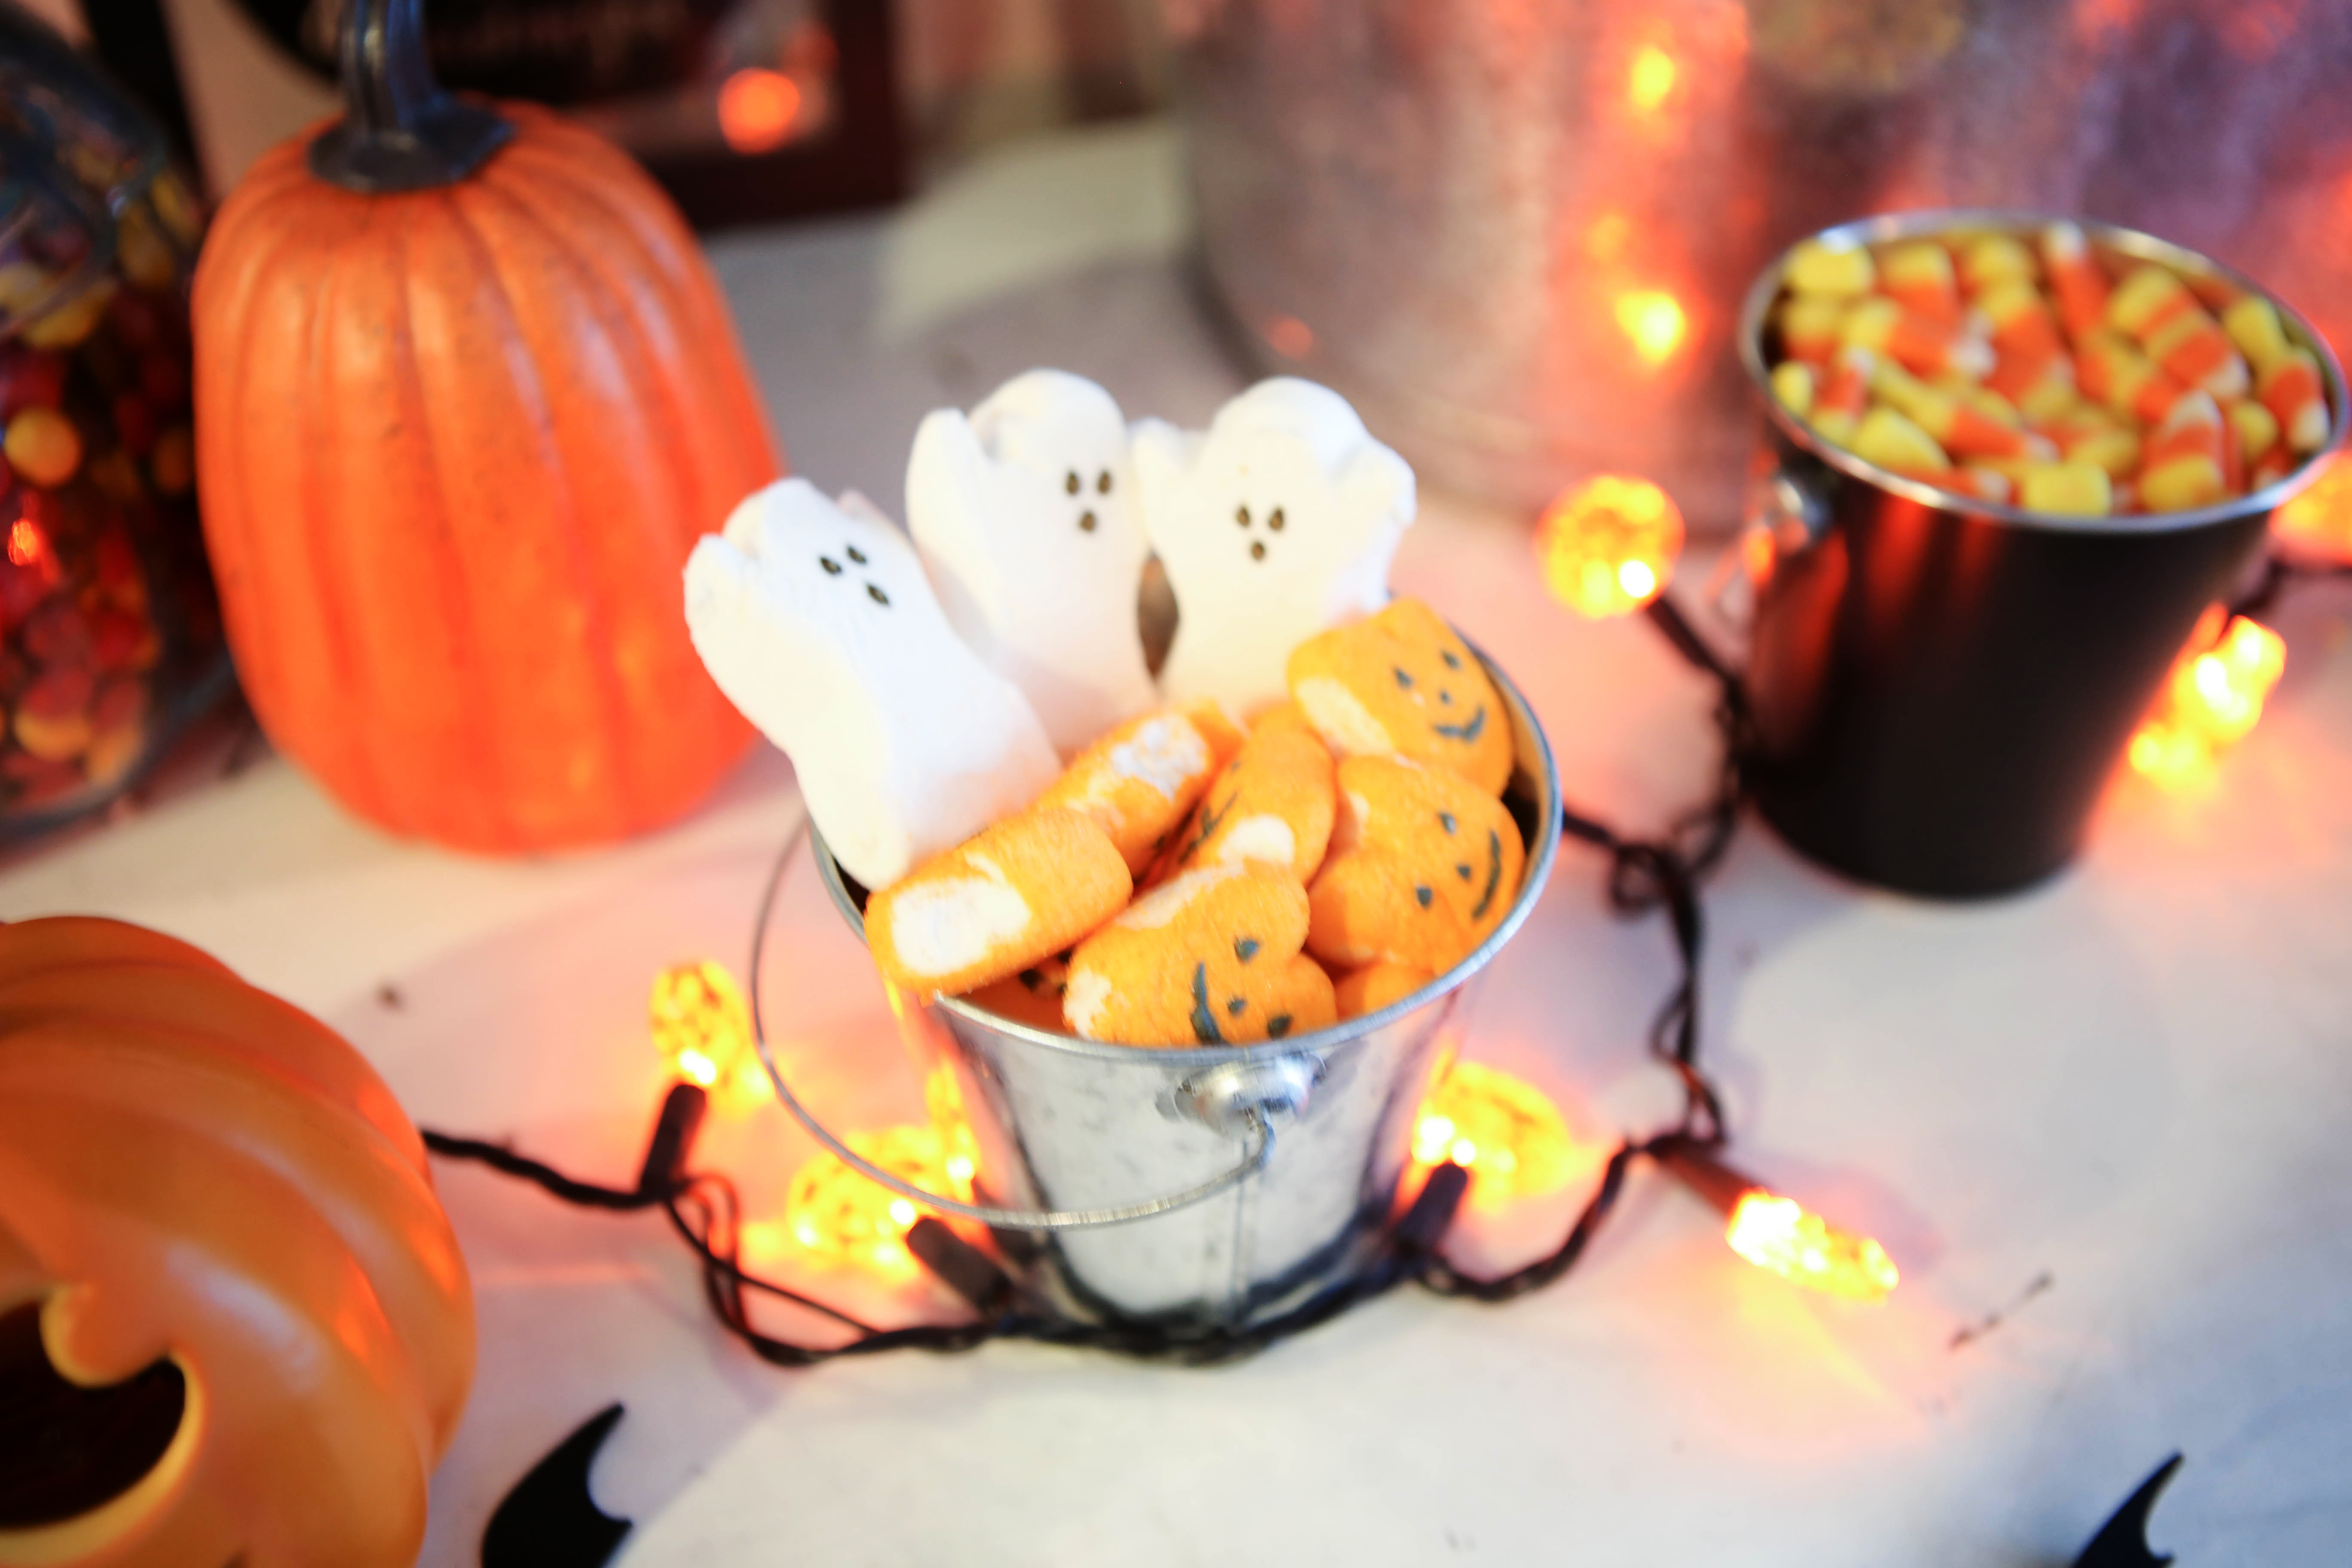 halloweenpeeps - Halloween Popcorn Bar by Atlanta lifestyle blogger Happily Hughes